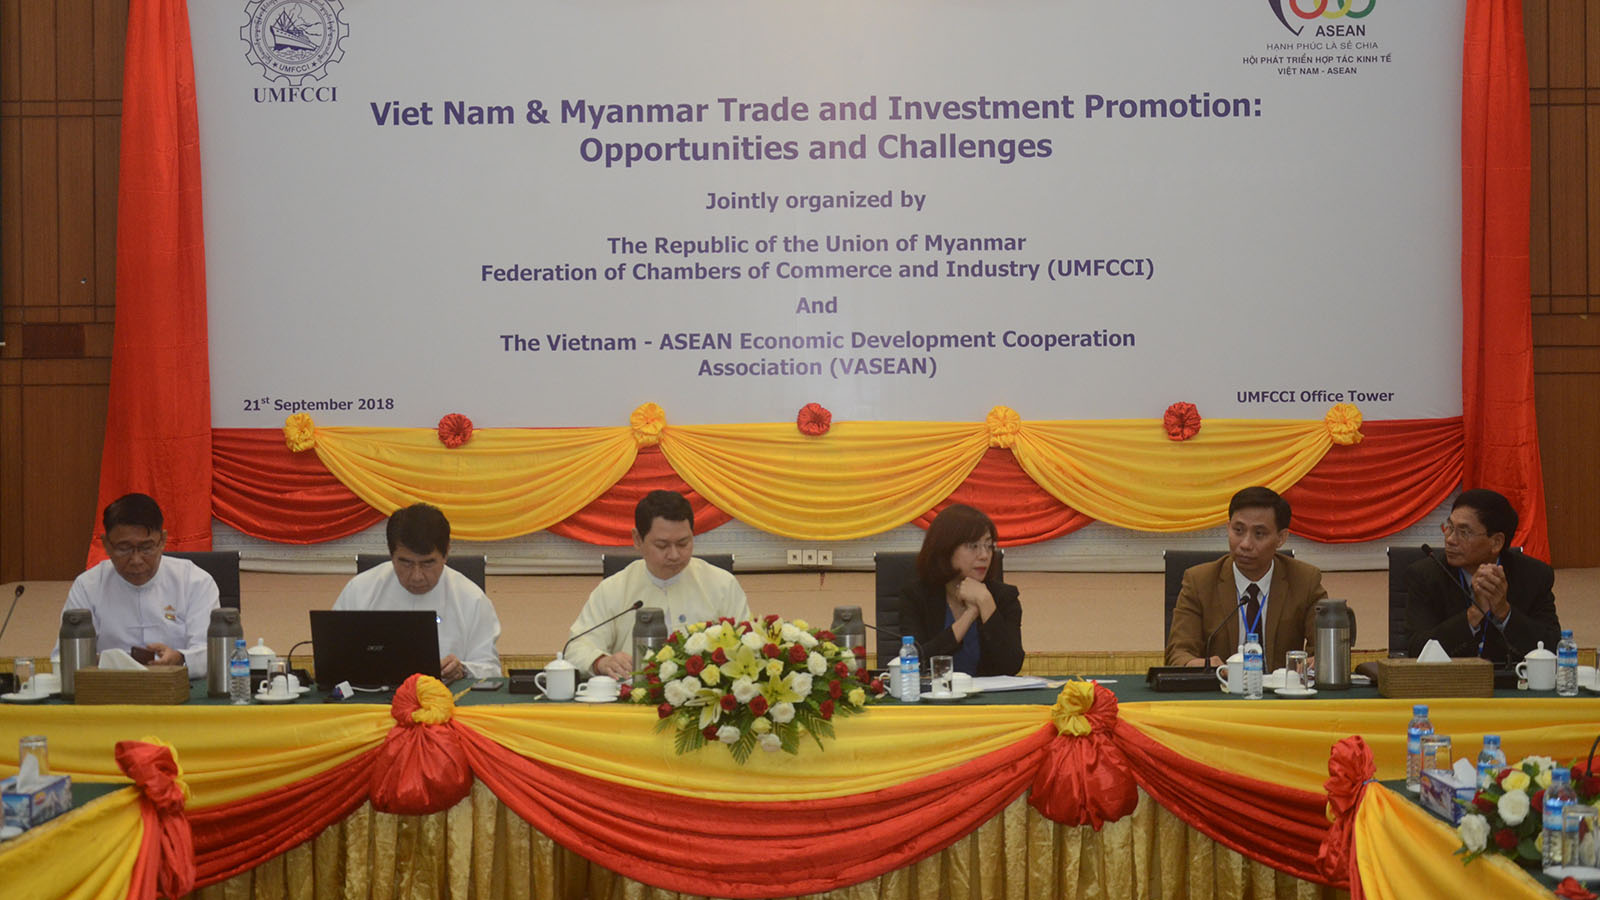 Viet Nam-Myanmar Trade & Investment Promotion event being held at UMFCCI in Yangon yesterday. Photo: Phoe Khwar